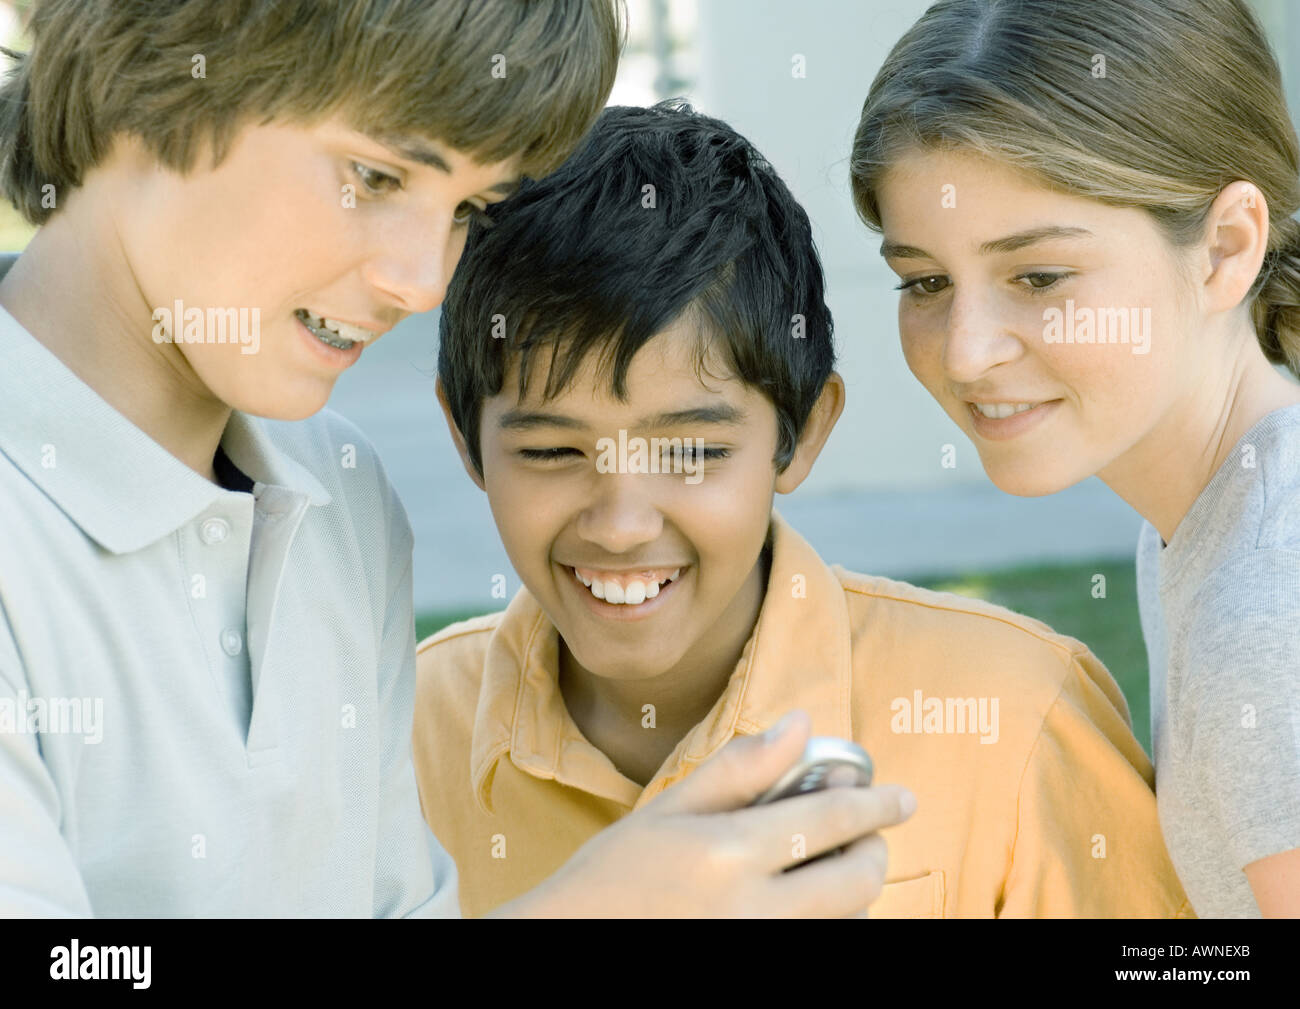 Preteen friends looking at cell phone - Stock Image